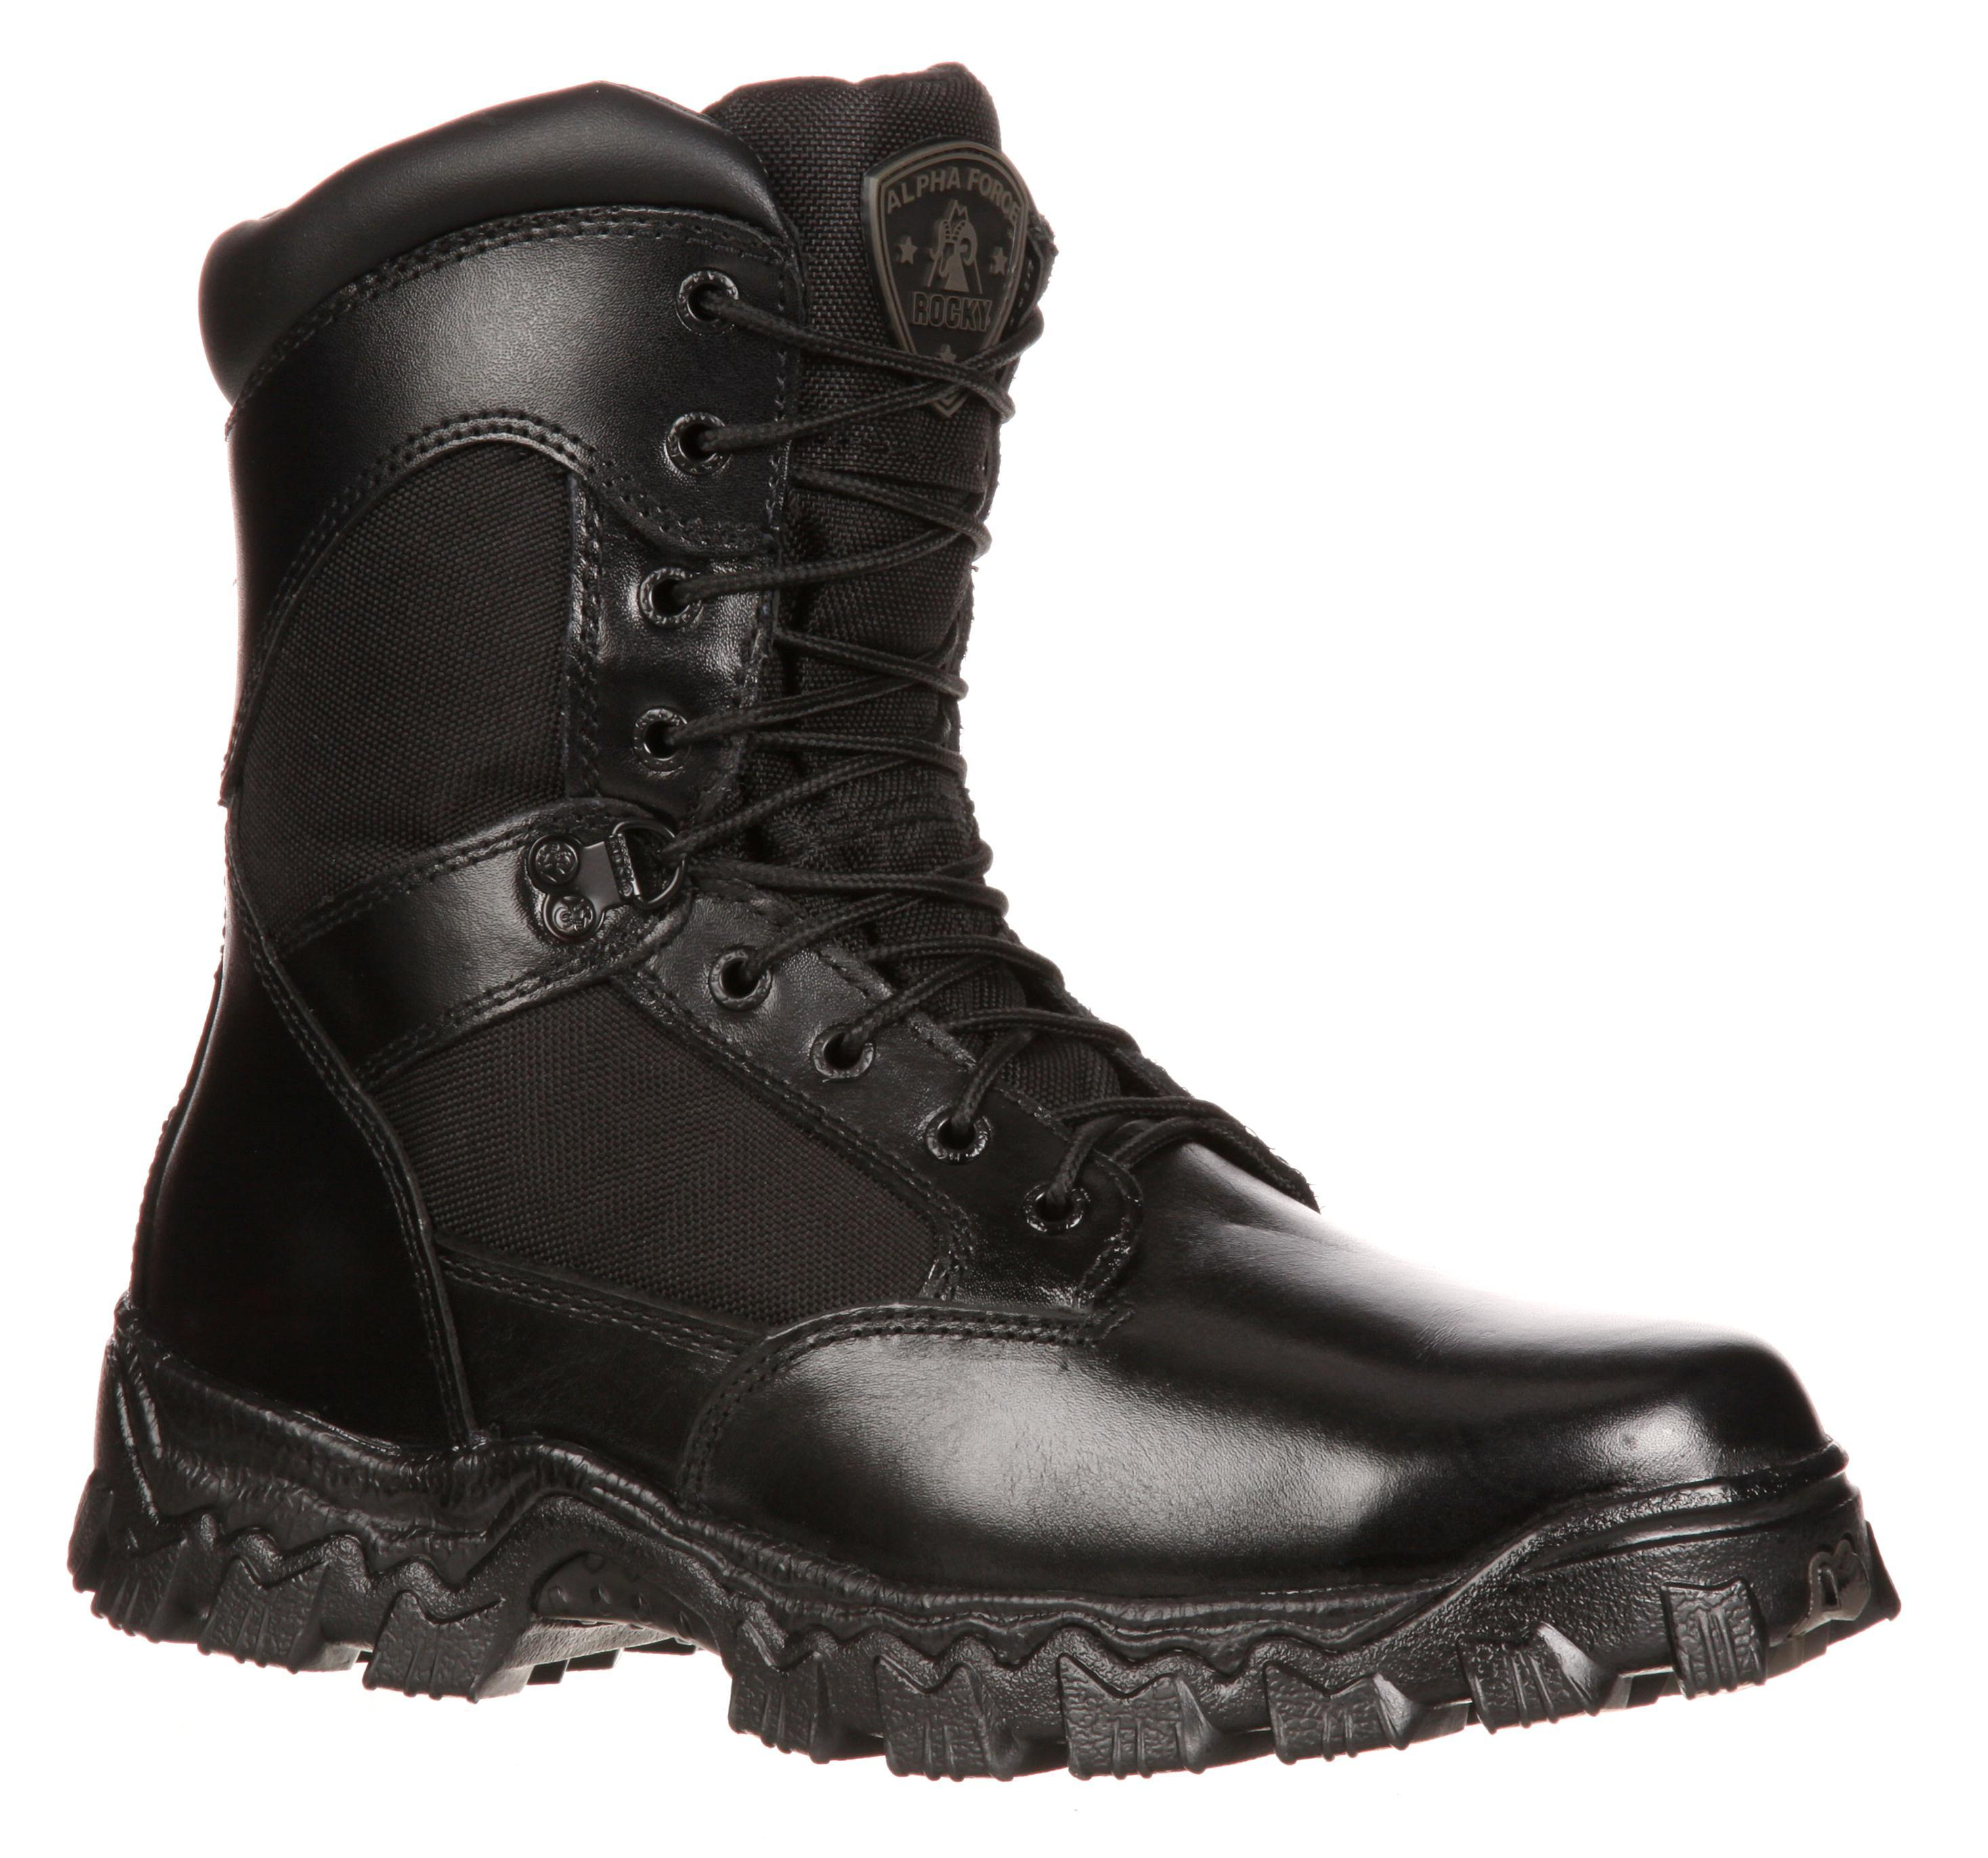 Rocky Alphaforce Zipper Waterproof Duty Boot - 2173 | Barneys ...